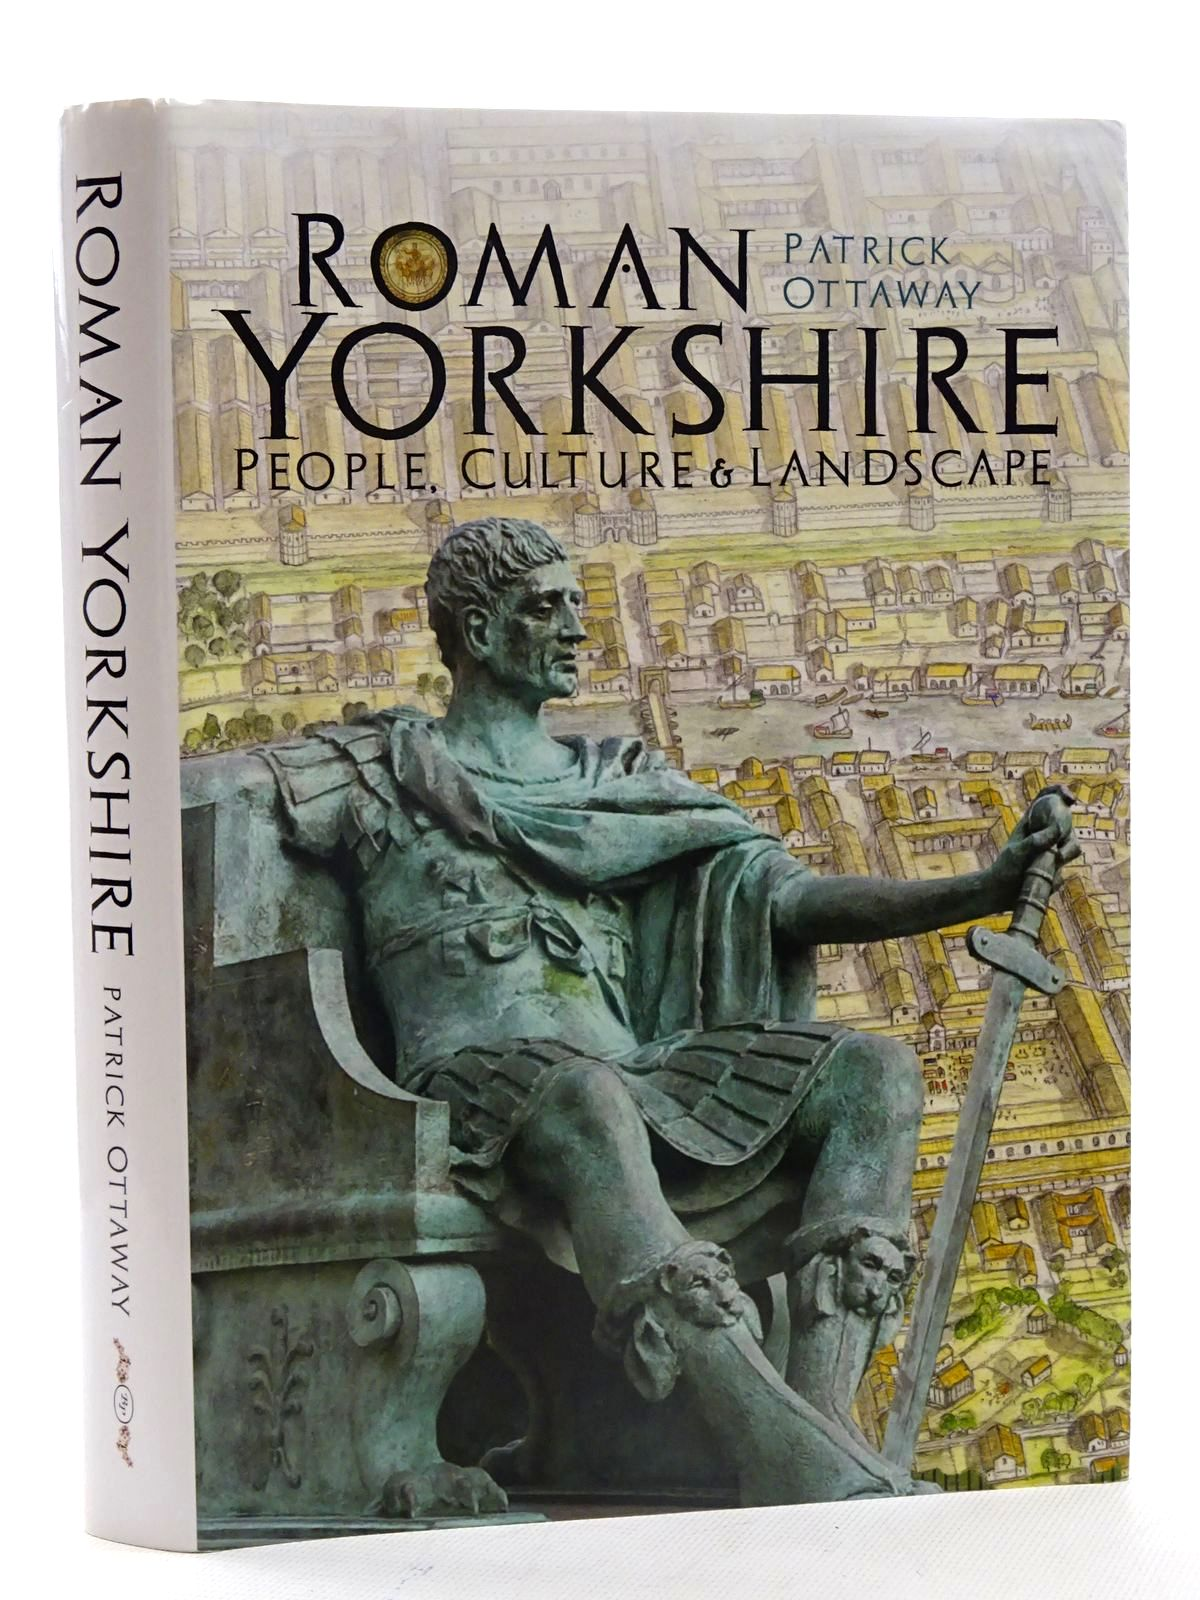 Roman Yorkshire People, Culture & Landscape